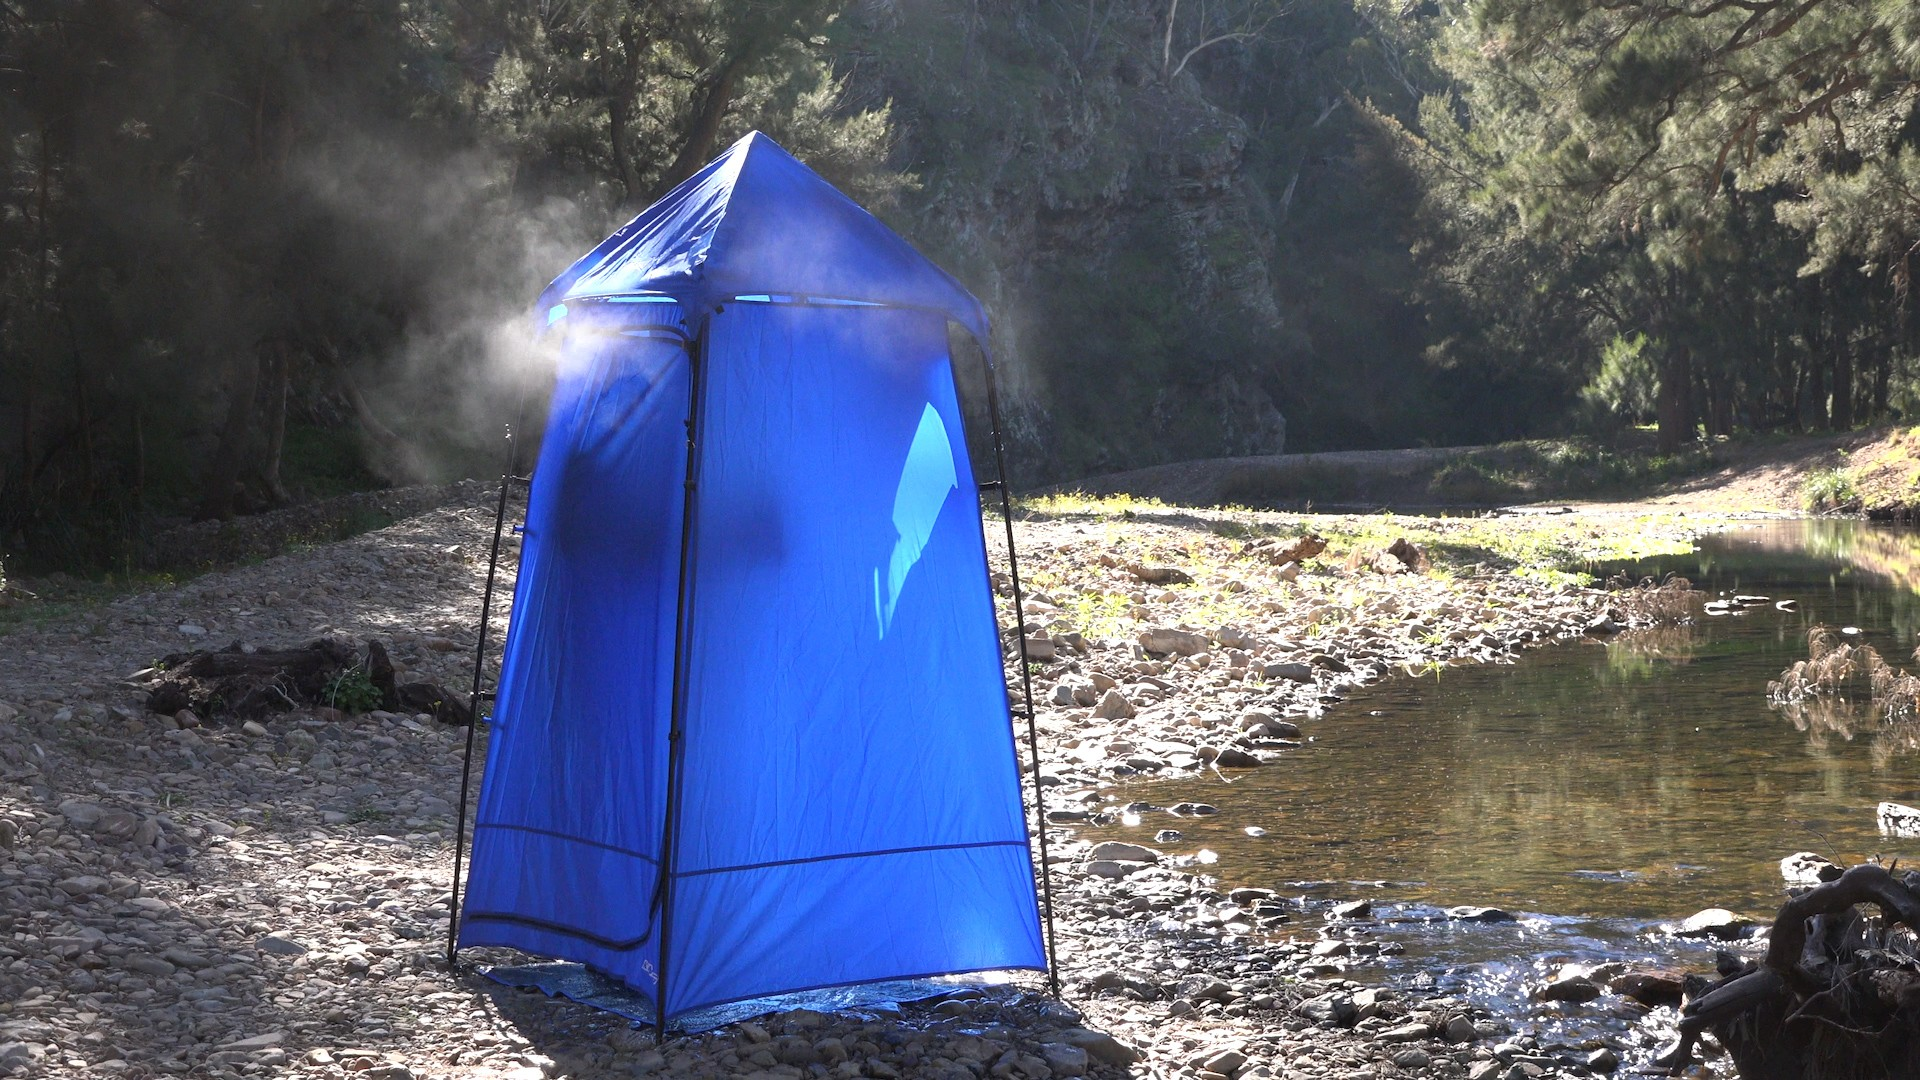 Are Camping Solar Panels Still Useful During Winter? - image shower_tent on https://www.4wdsupacentre.com.au/news